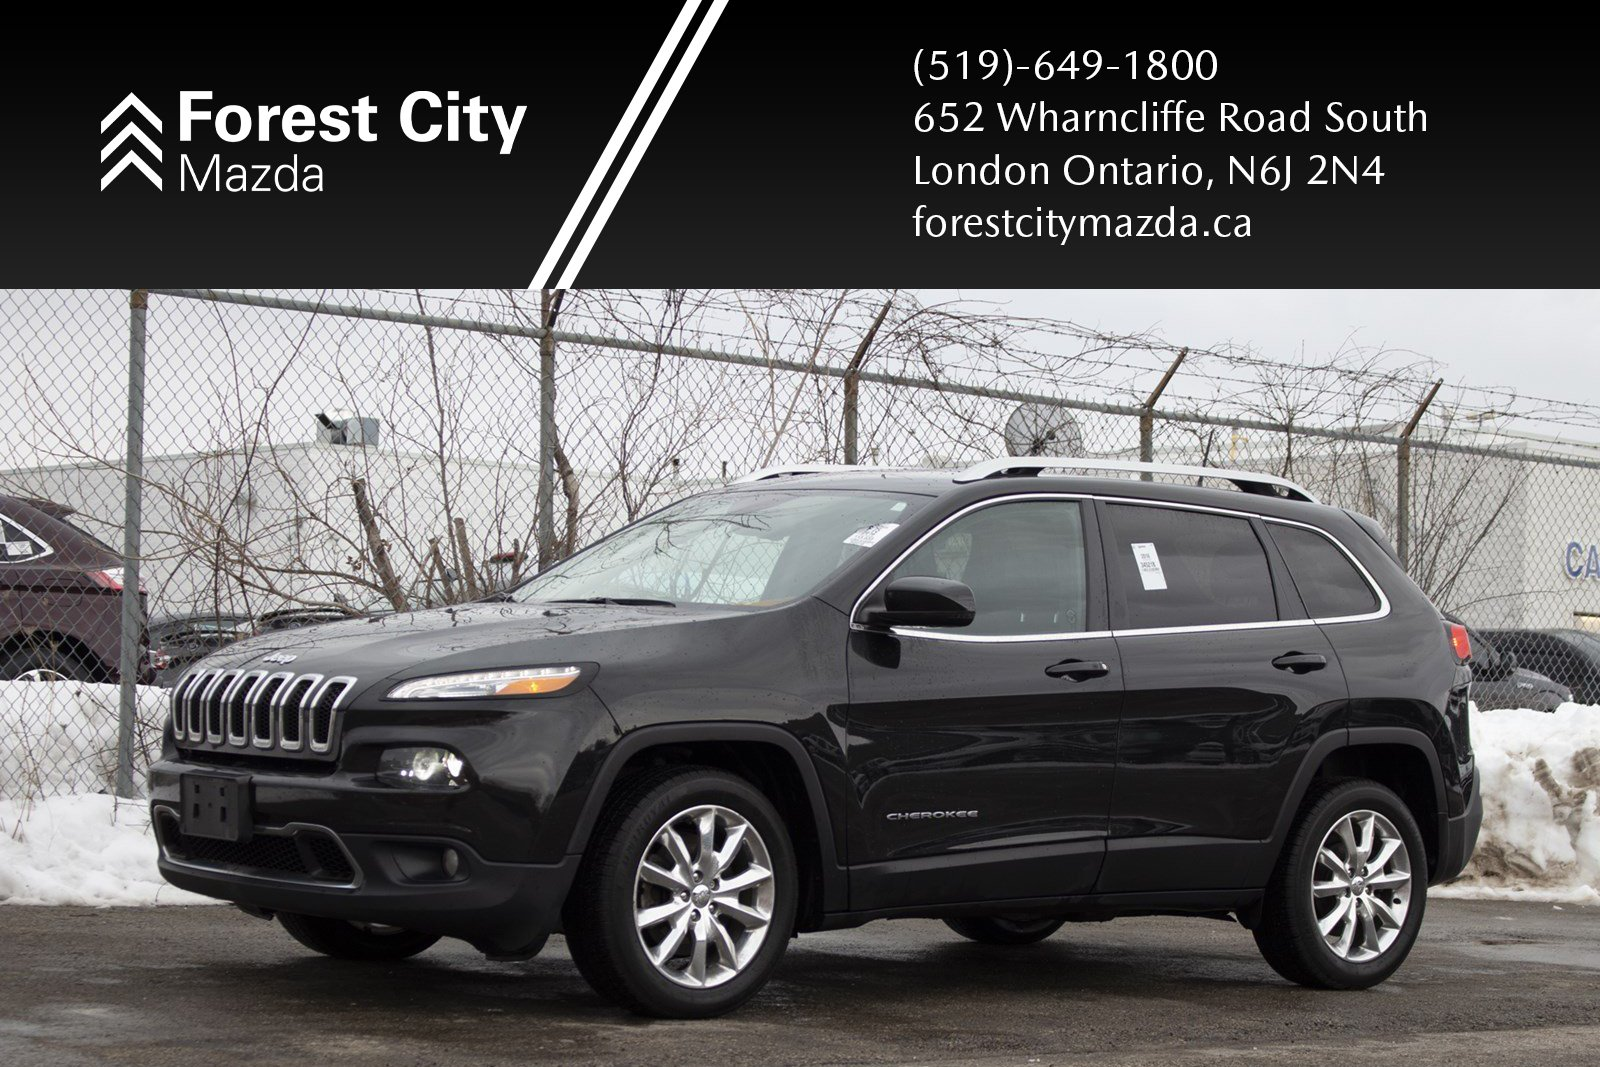 Pre-Owned 2016 Jeep Cherokee Limited,AUTOMATIC,LEATHER INTERIOR